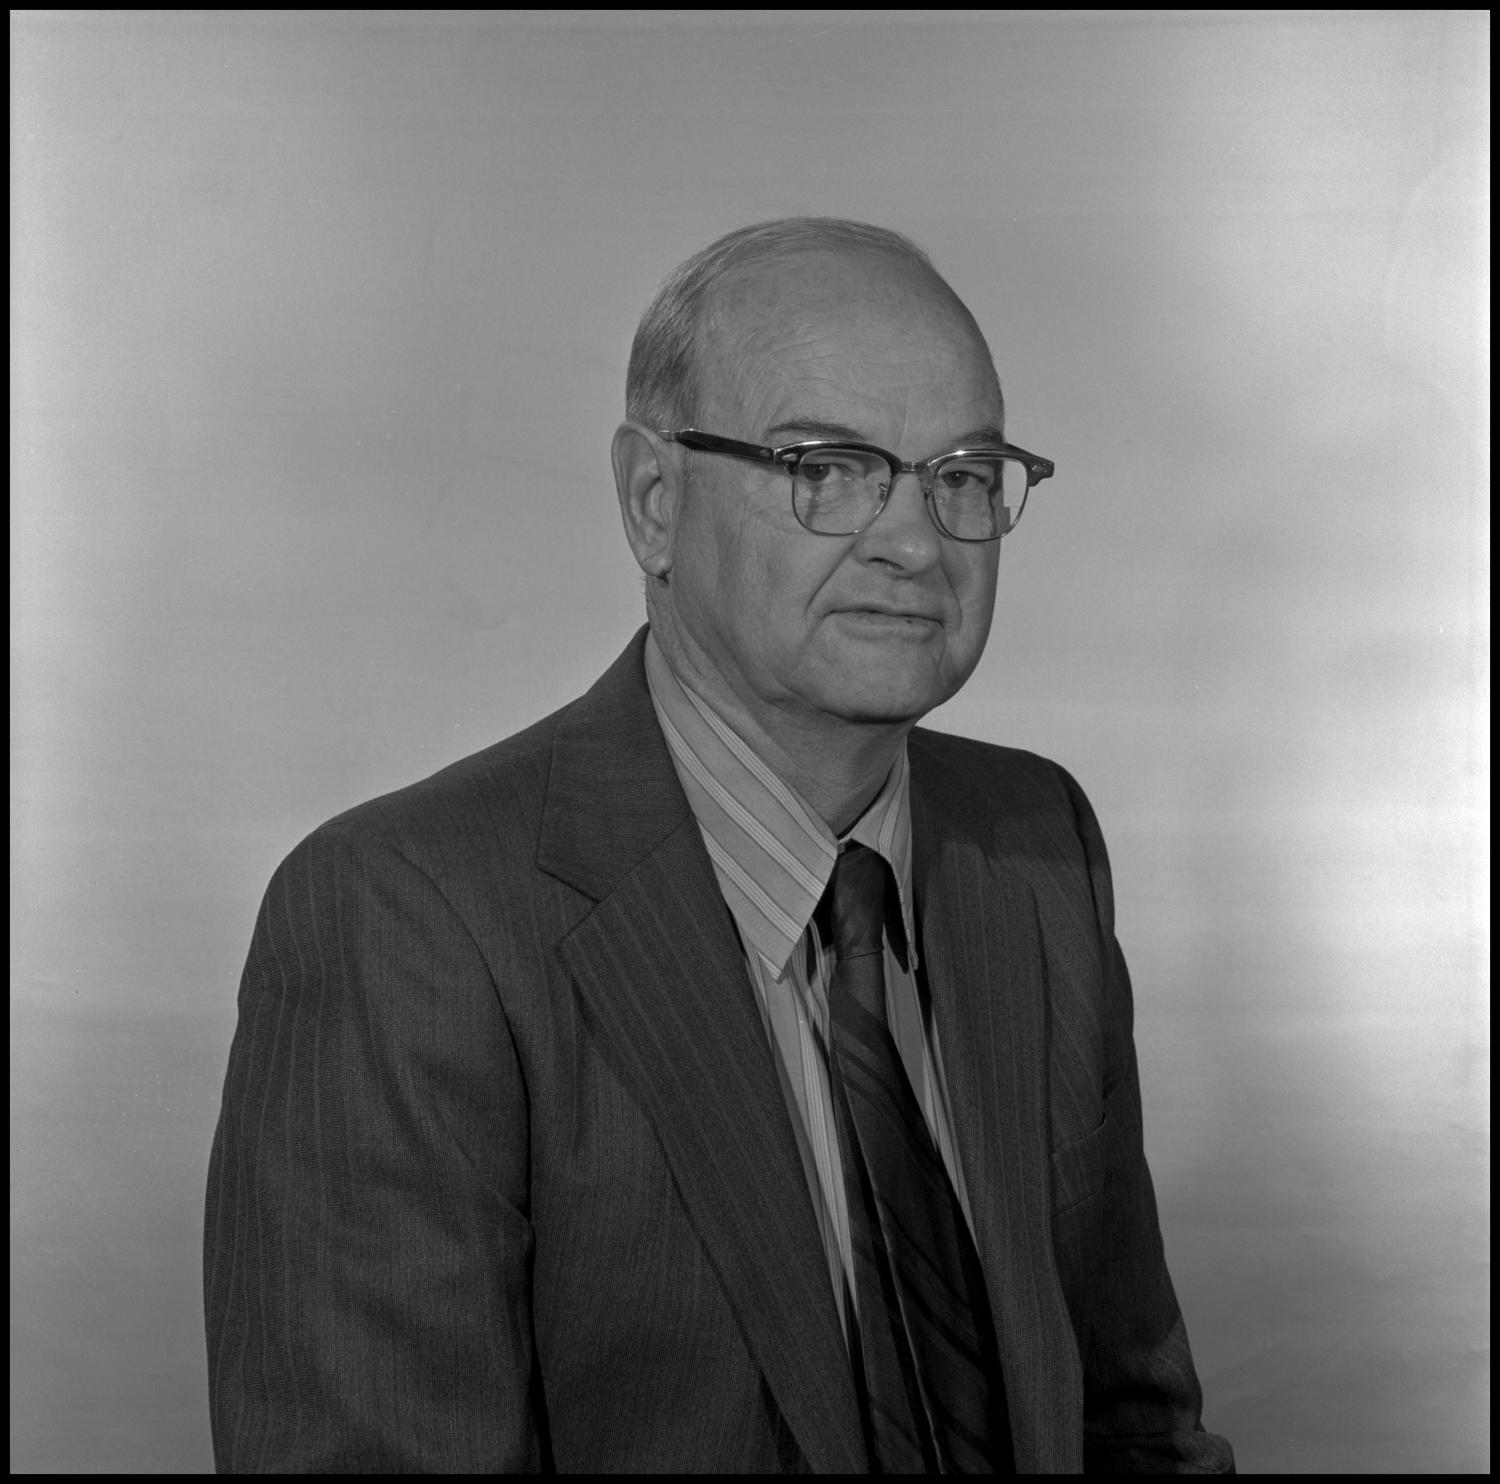 [Portrait photo of Garland Brookshear], Photograph of Garland Brookshear, a member of the Management faculty at NTSU, sitting for a portrait photo. He is wearing a suit with a striped shirt and tie, as well as a pair of glasses.,